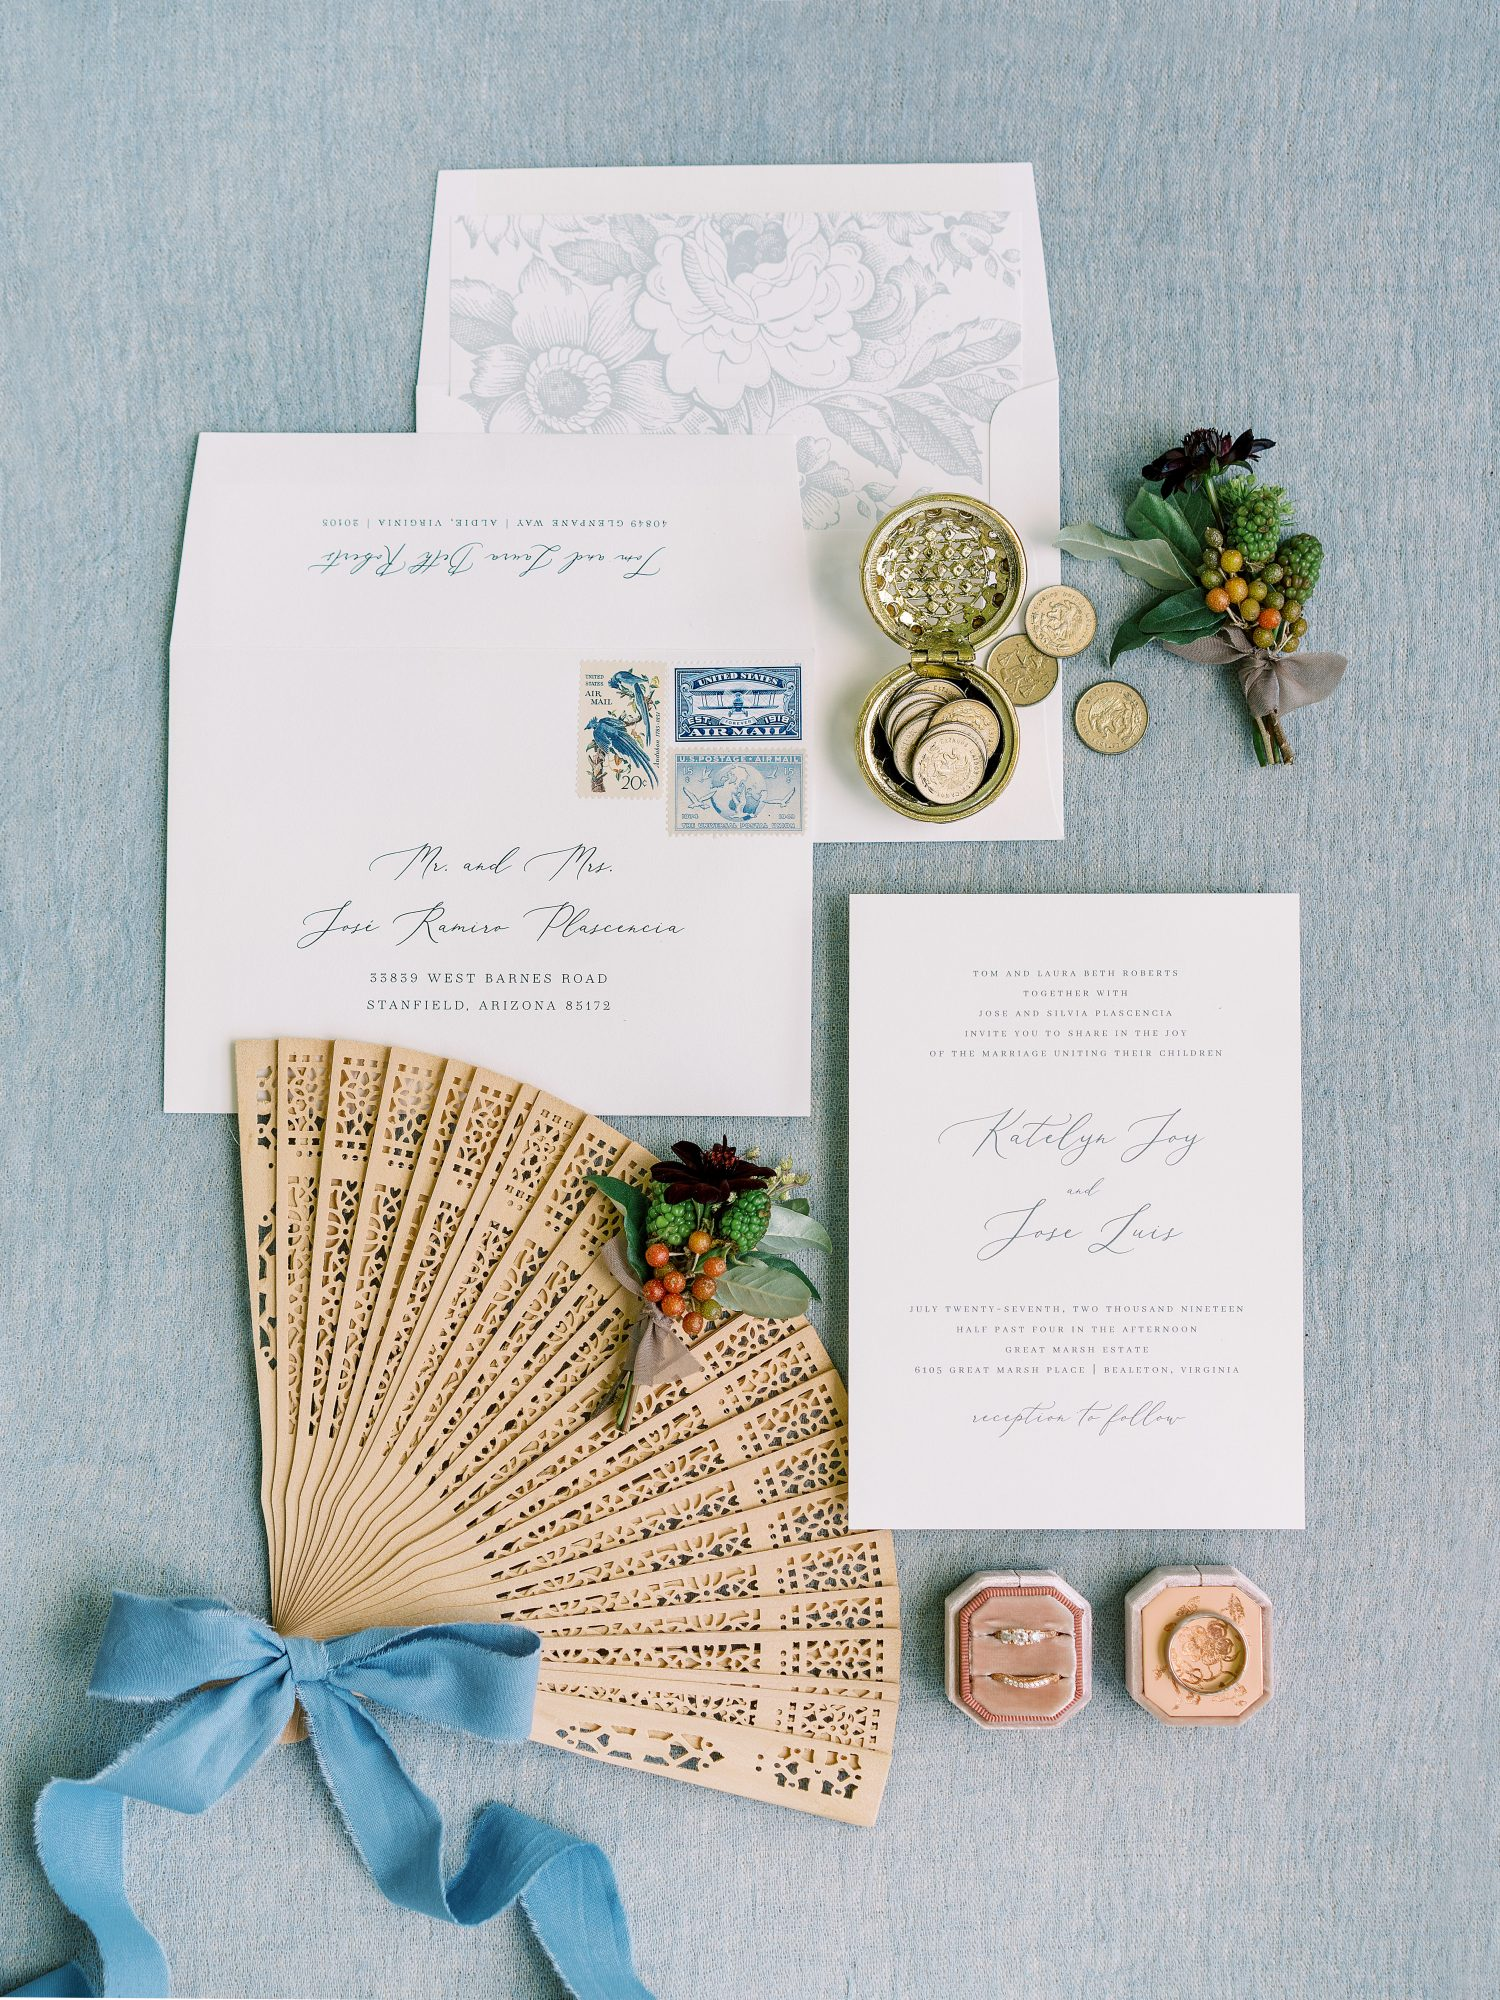 katelyn jose wedding invitation suite